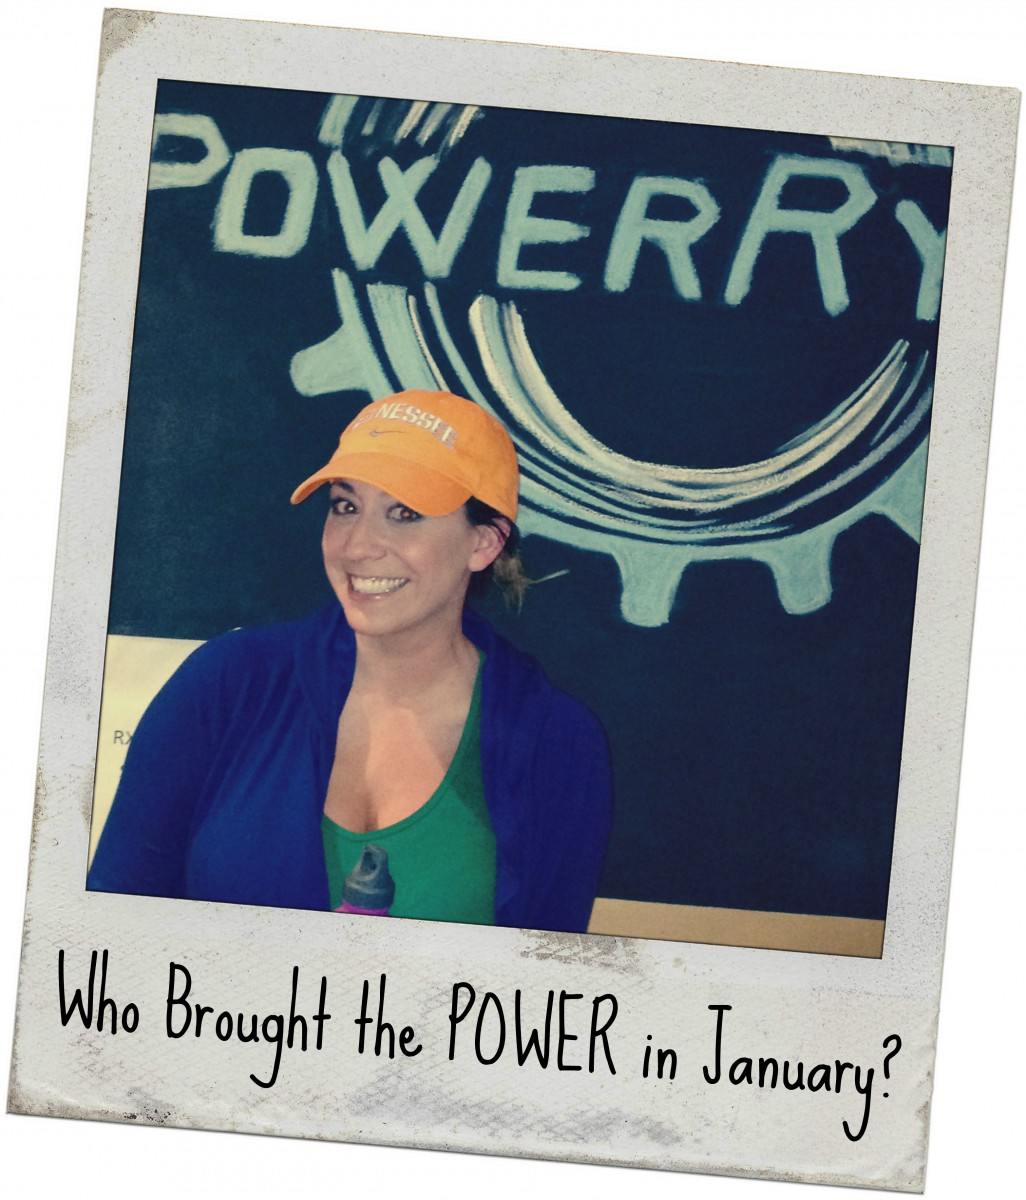 Who Brought the POWER in January?